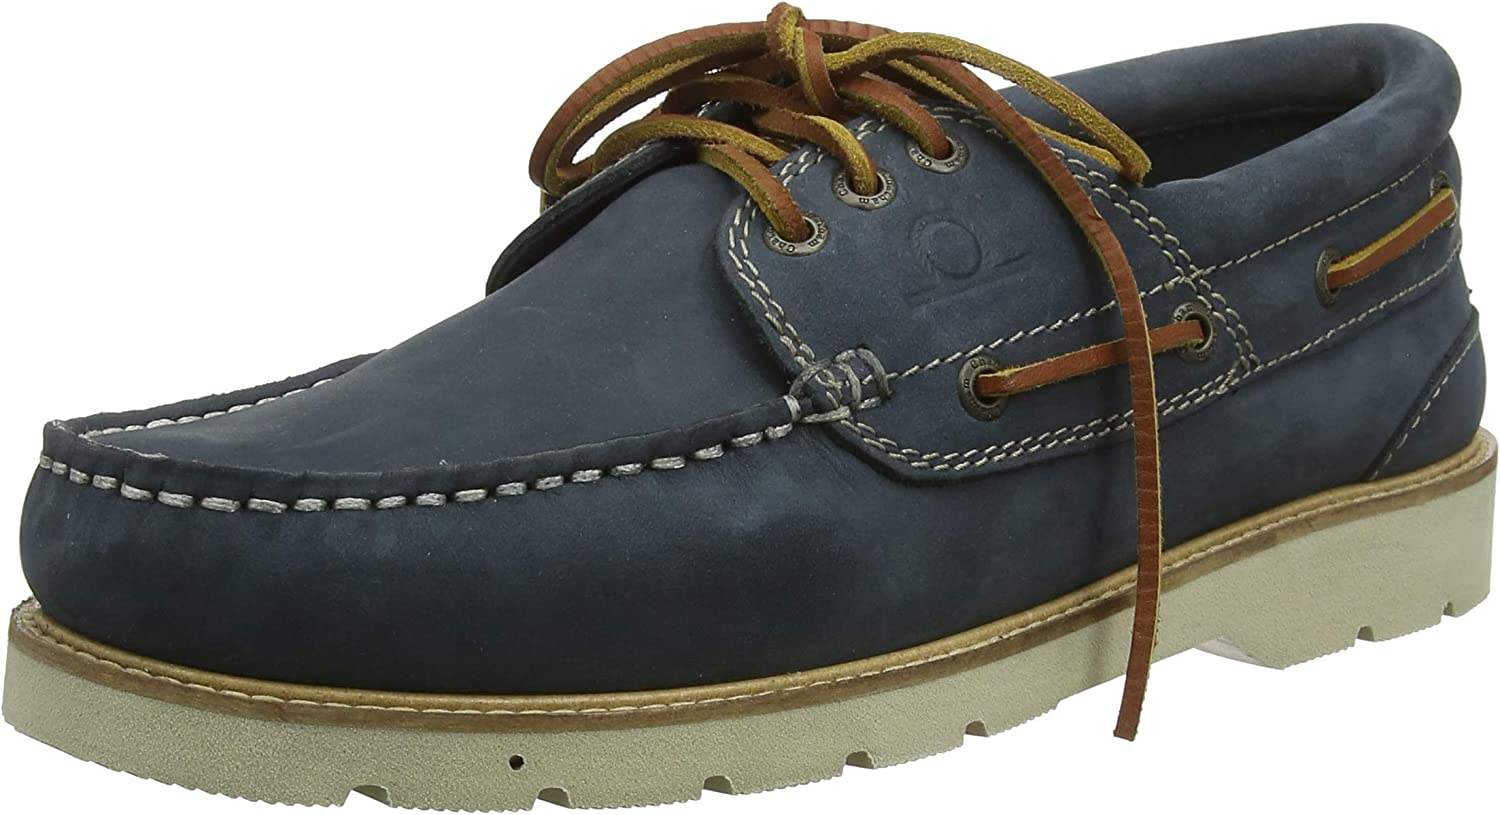 Chatham Men's Peregrine Boat shoes